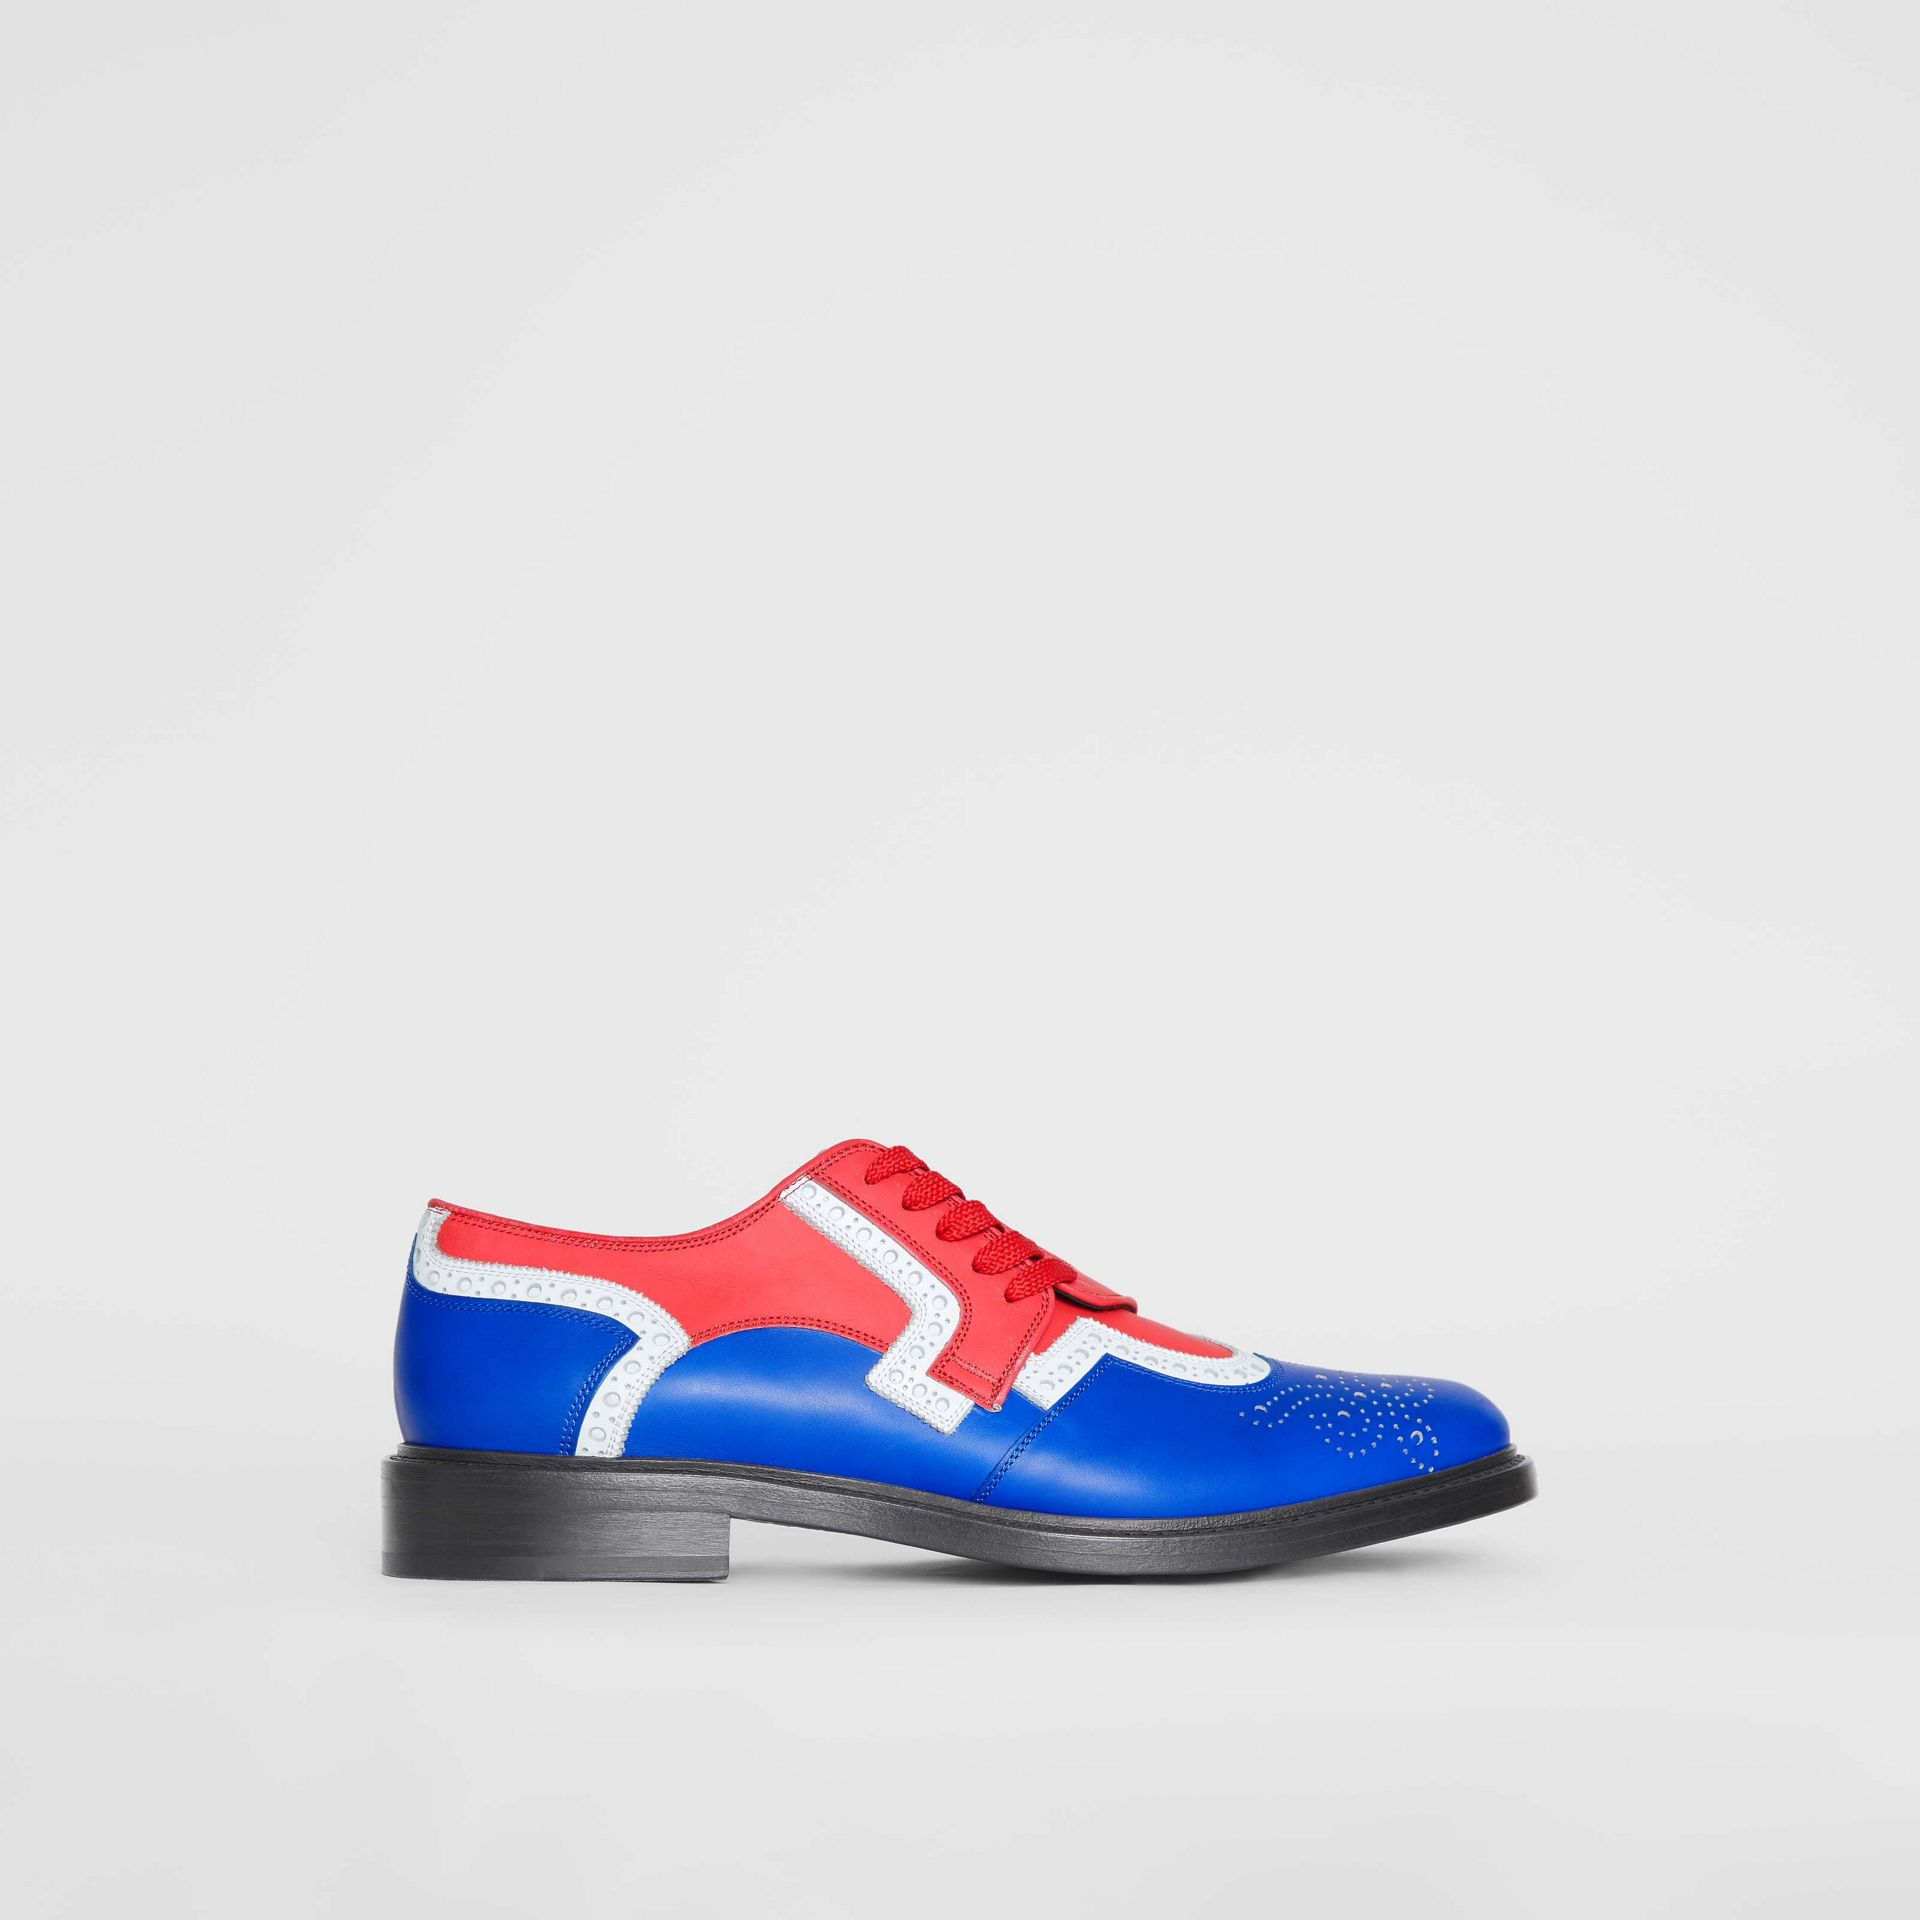 Asymmetric Closure Tri-tone Leather Brogues in Blue/red - Men | Burberry - gallery image 5